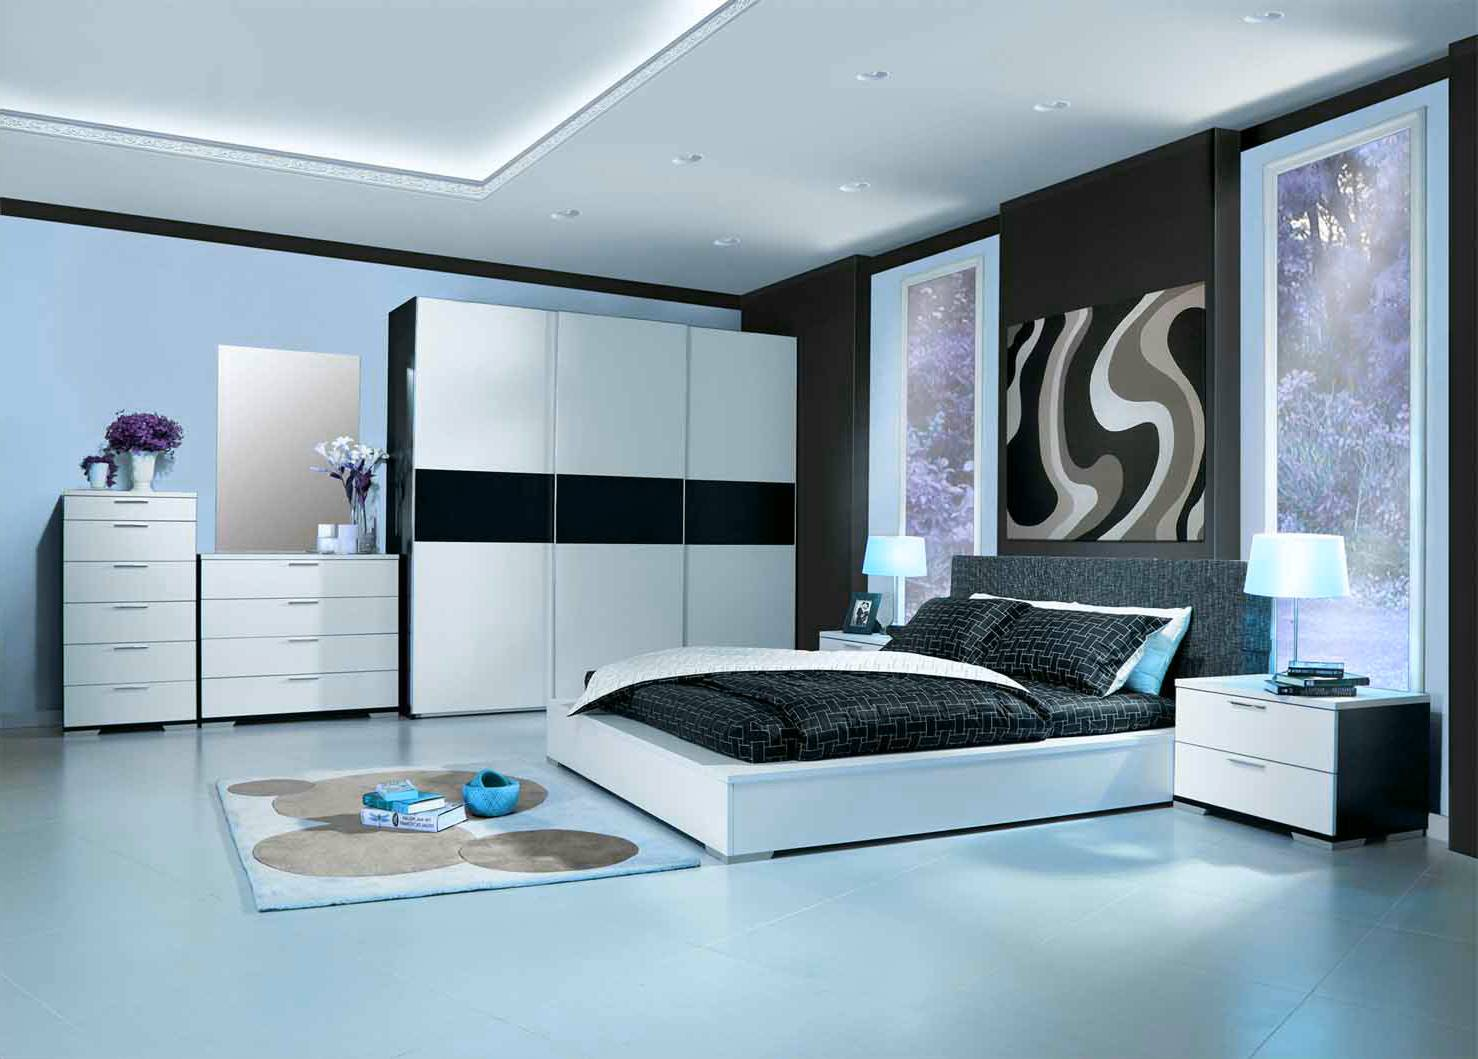 Amidib50 Awesome Modern Interior Design Ideas Bedroom Today 2021 01 21